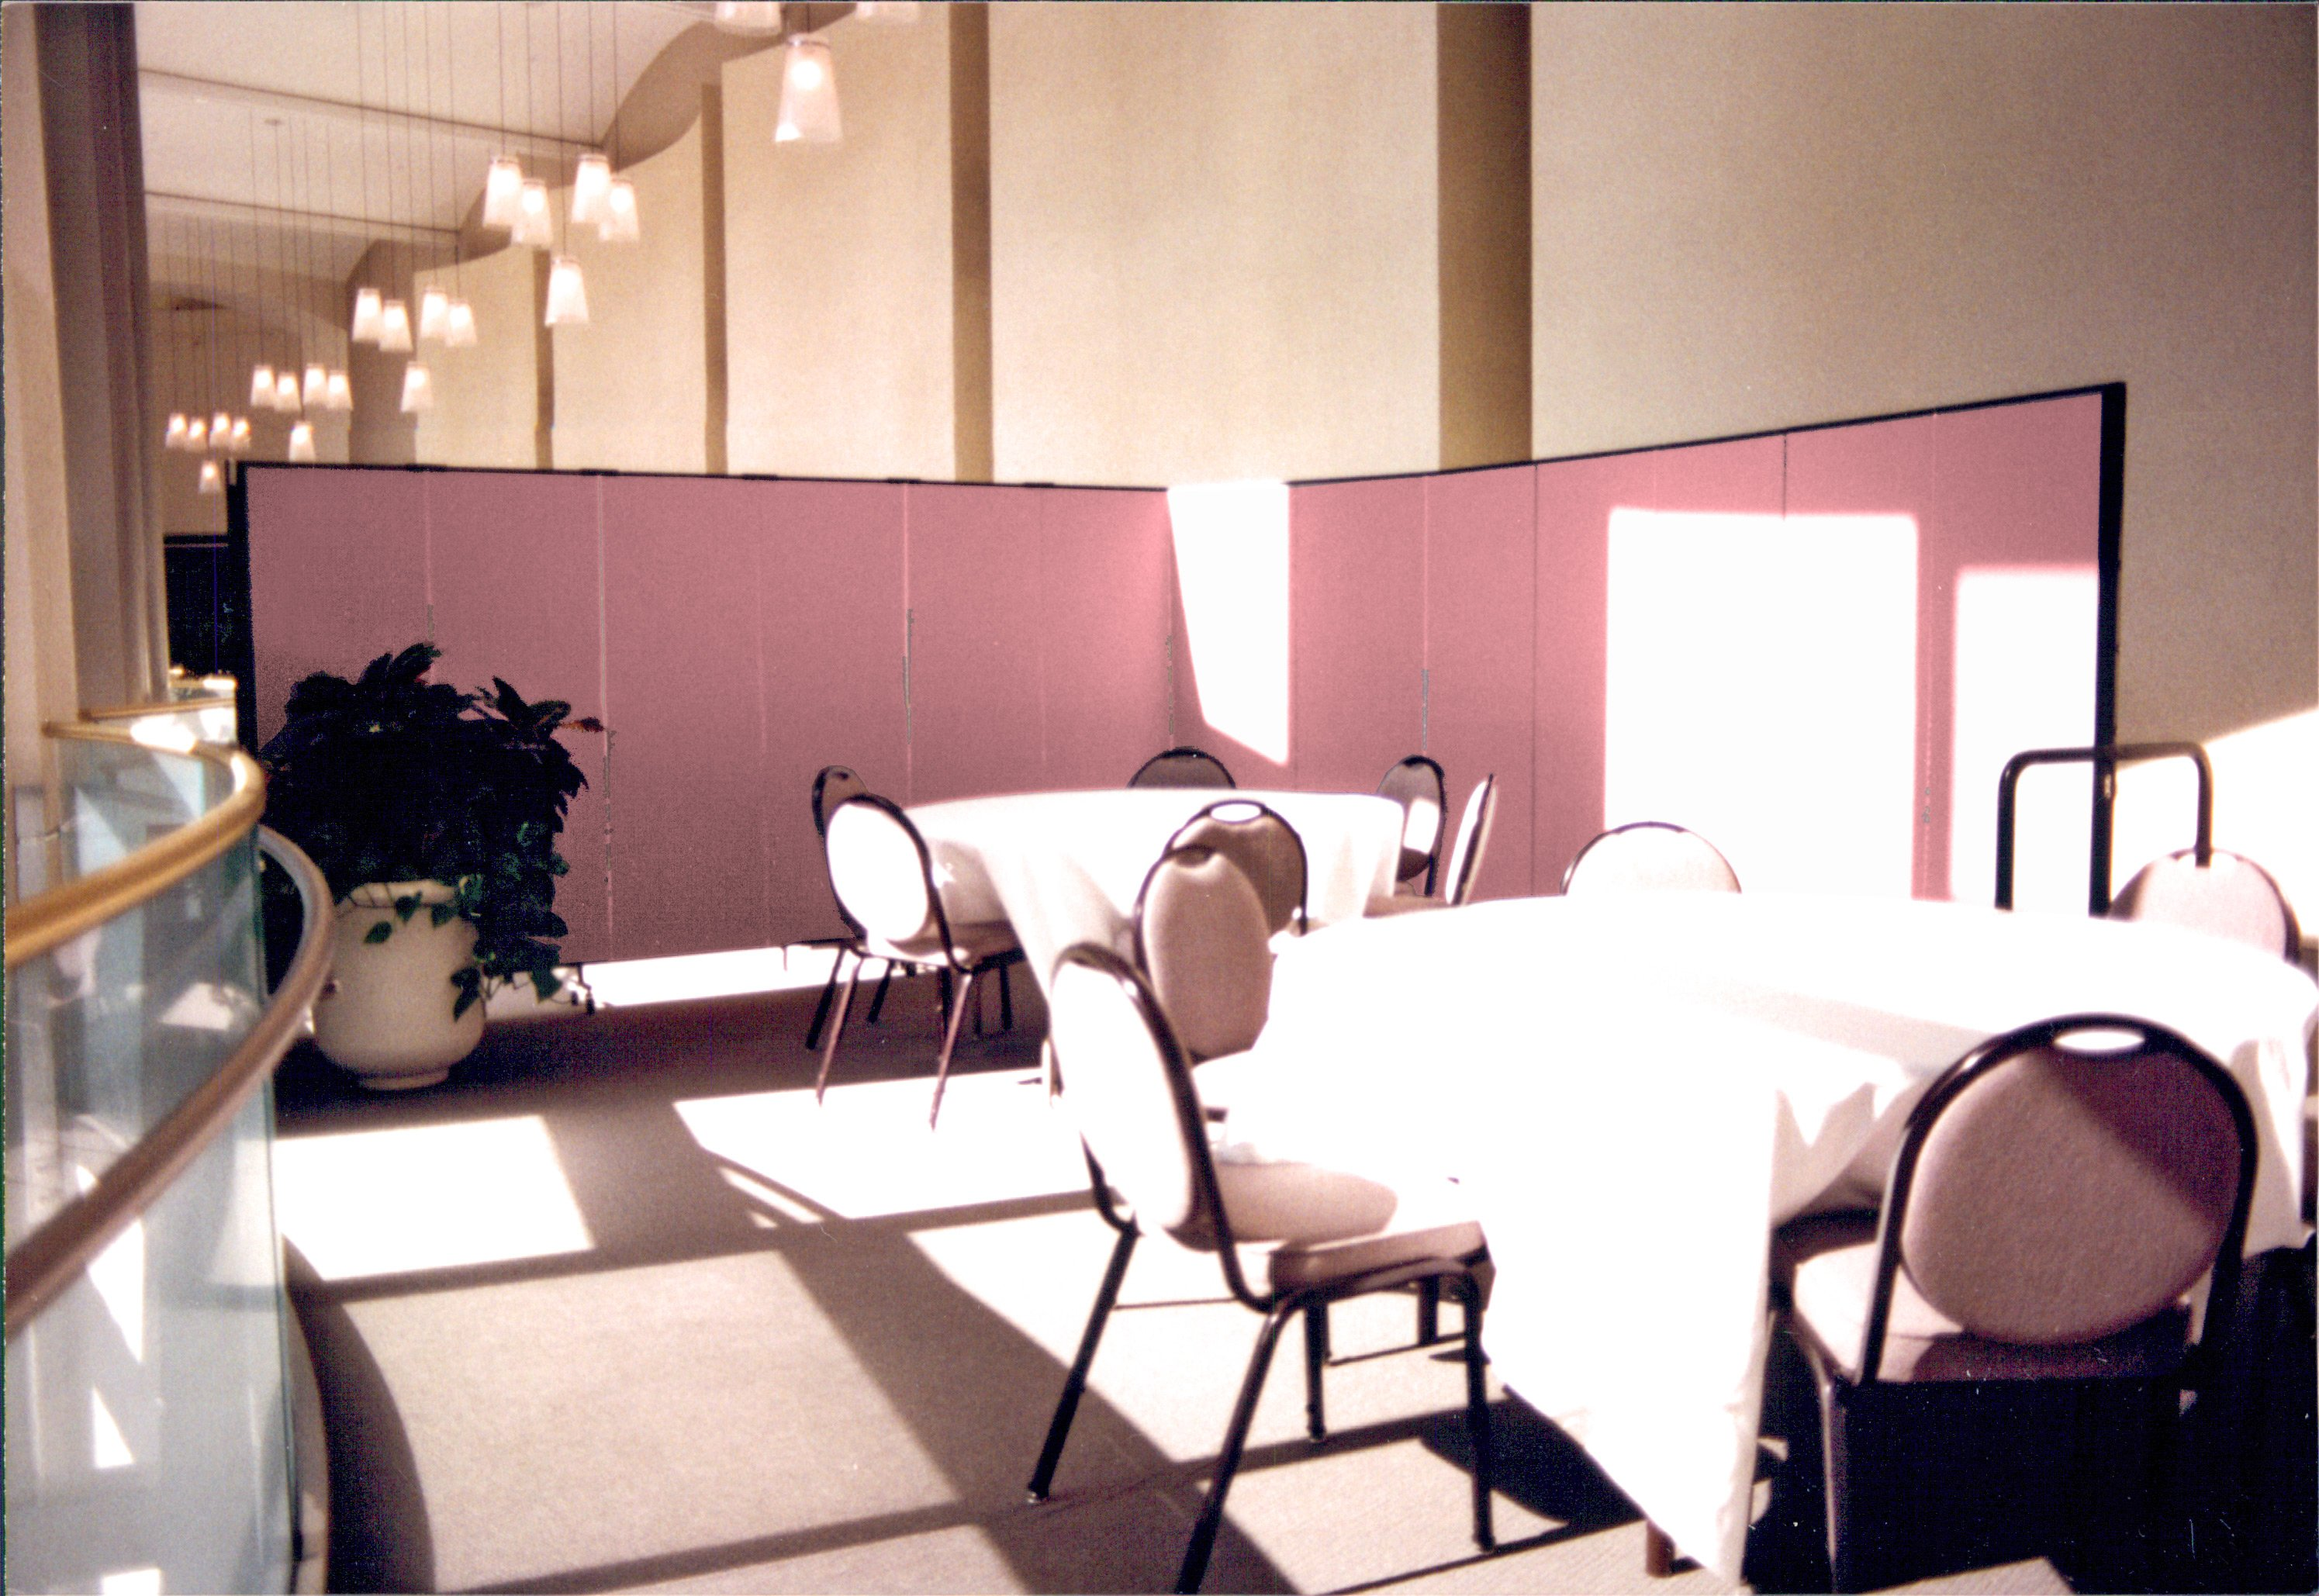 A set of round banquet tables and chairs arranged next to a set of windows and hidden from a hallway by a rolling room divider